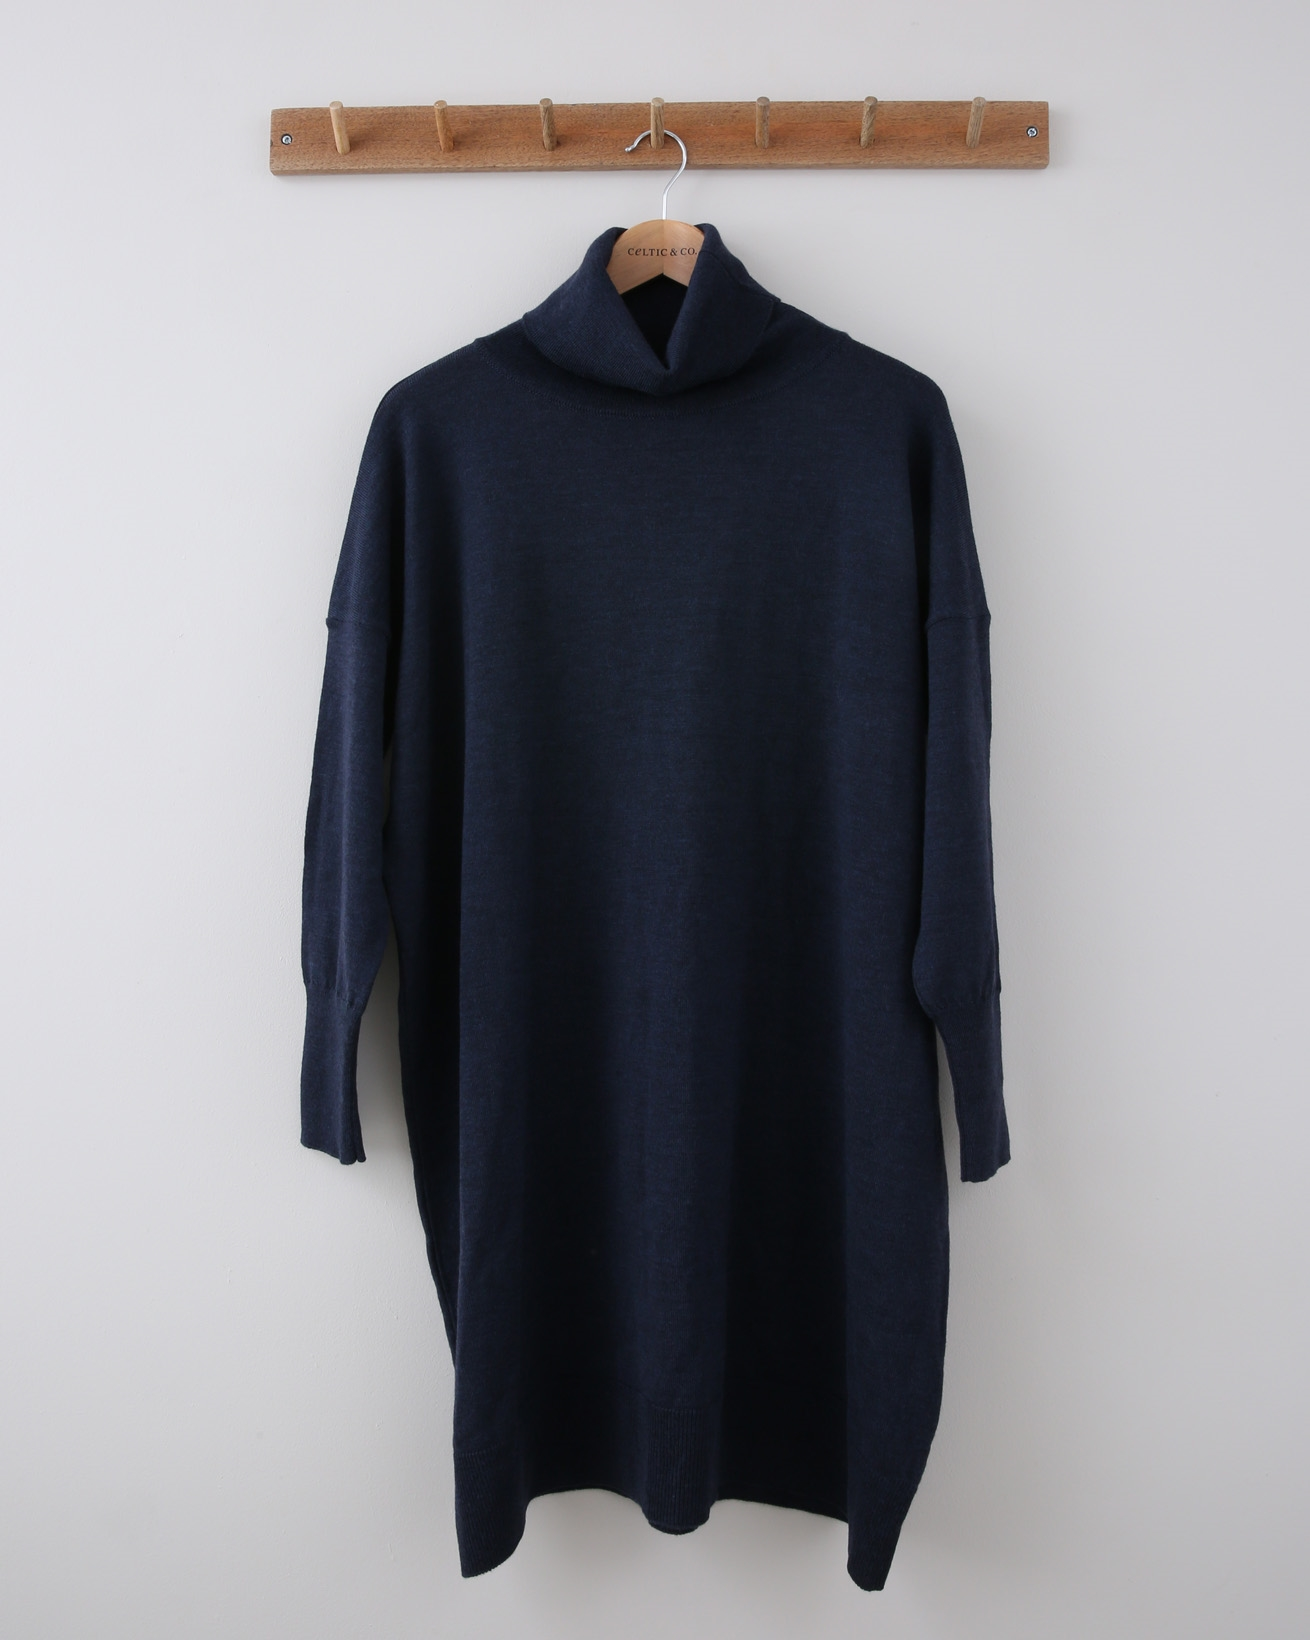 Slouchy Fine Knit Roll Neck Dress - Small - Airforce Blue - 1183